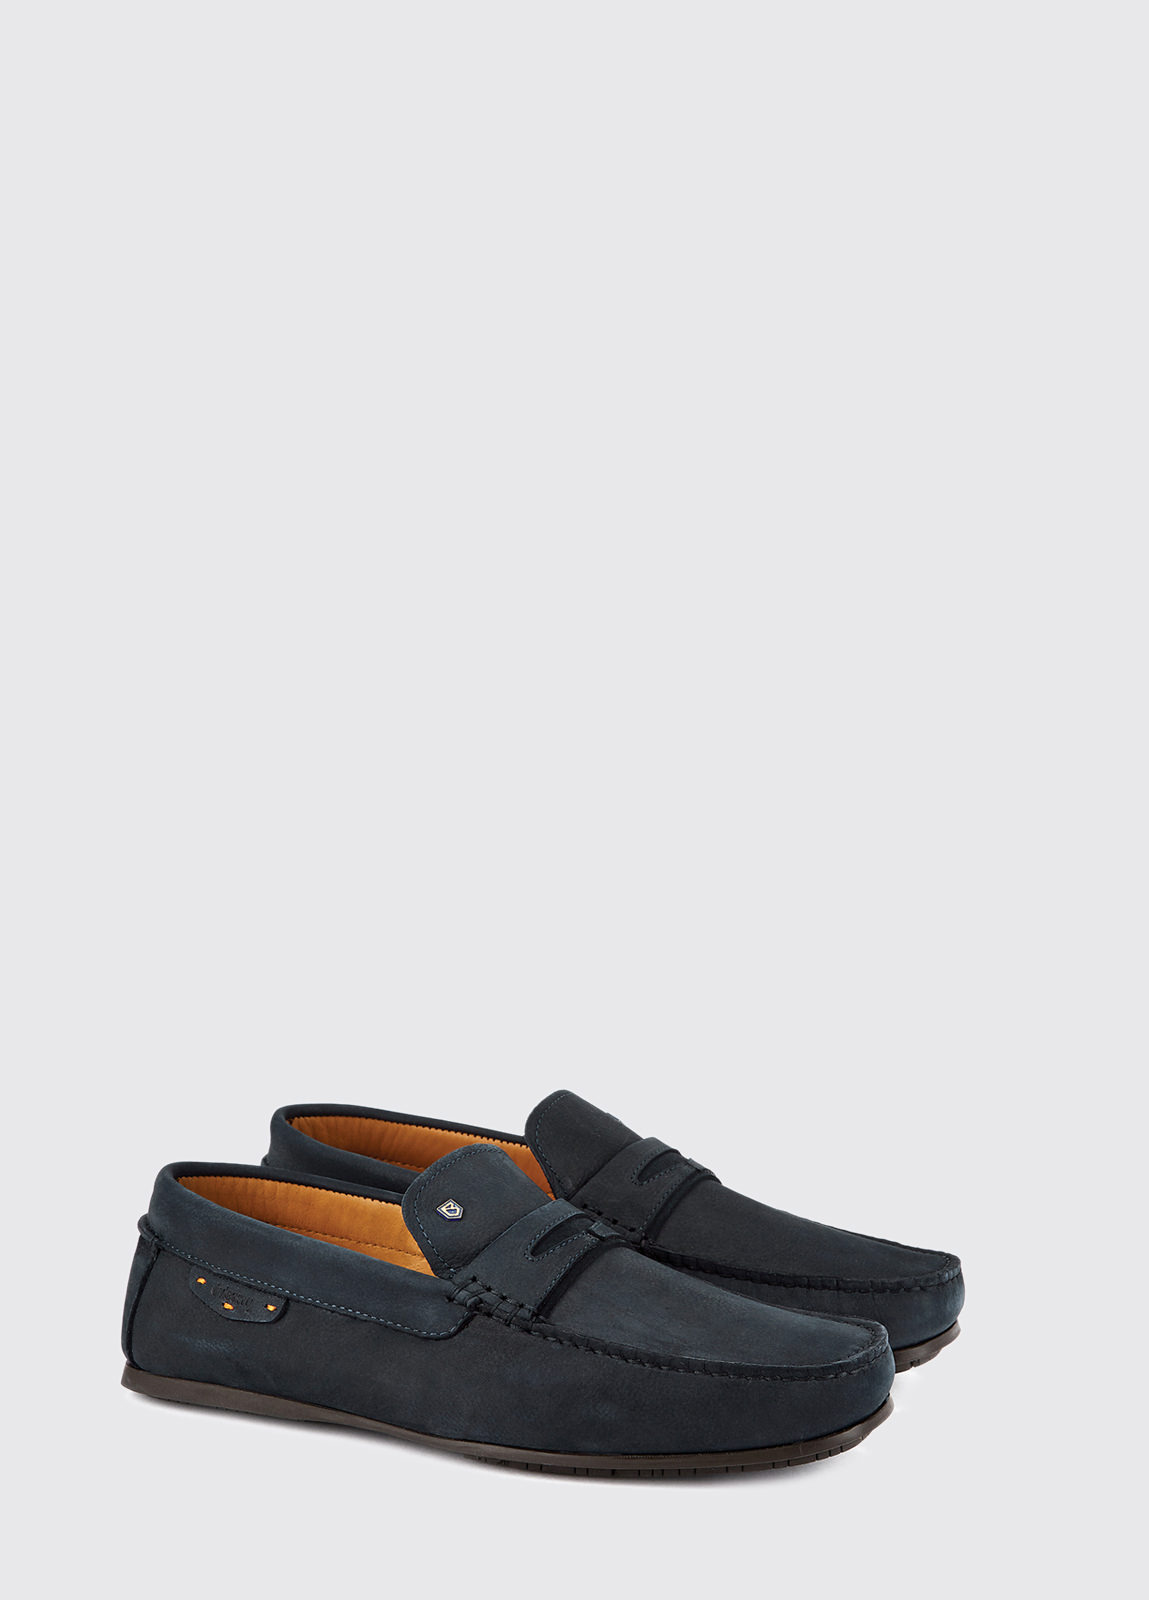 Trinidad Loafer - Navy